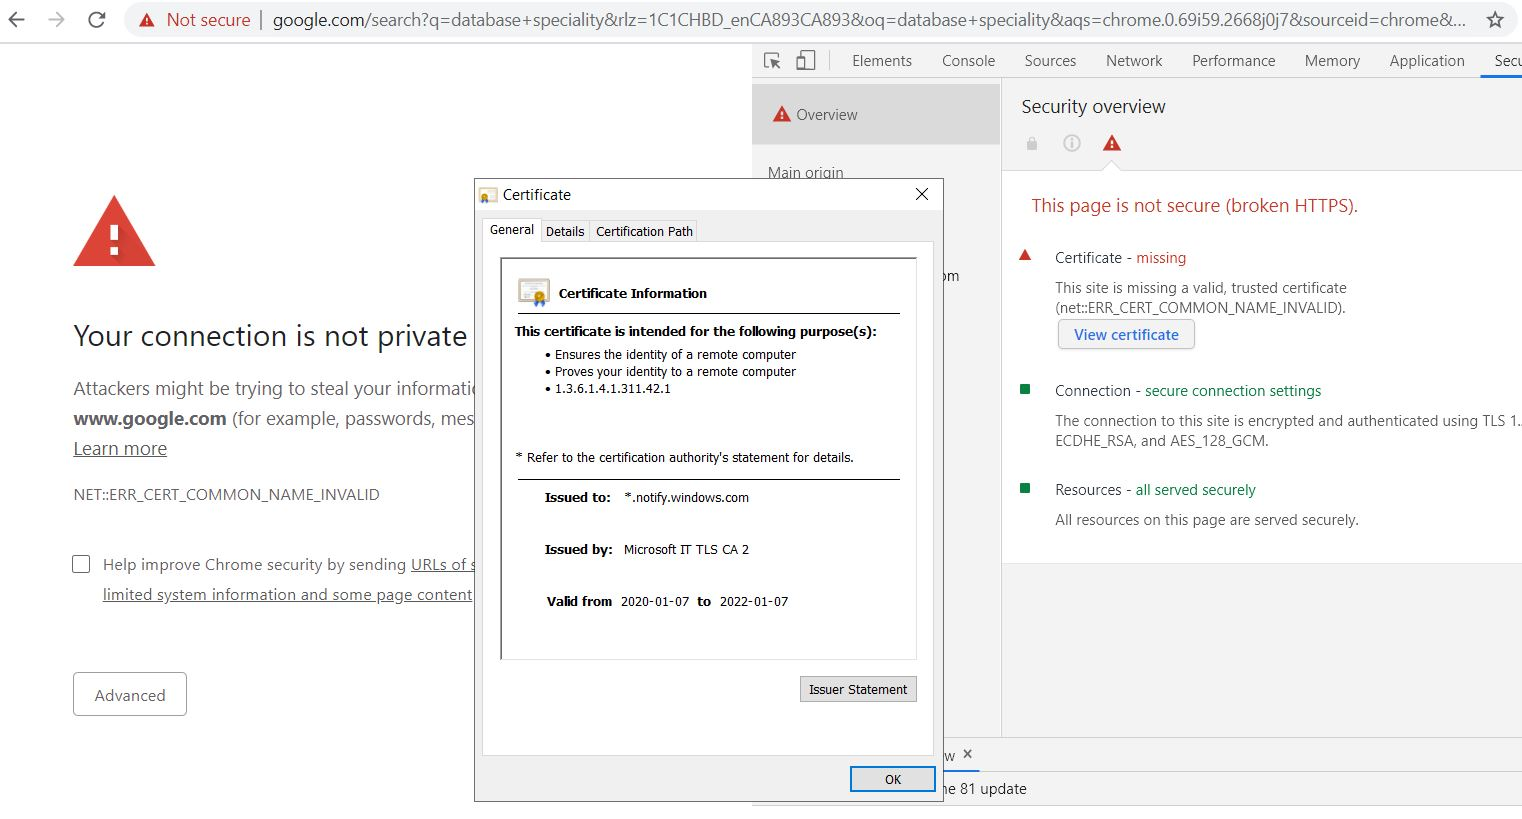 Wrong SSL cert showing up in browsers 43323ed4-4e96-4fa8-9acf-7d54f9188733?upload=true.jpg